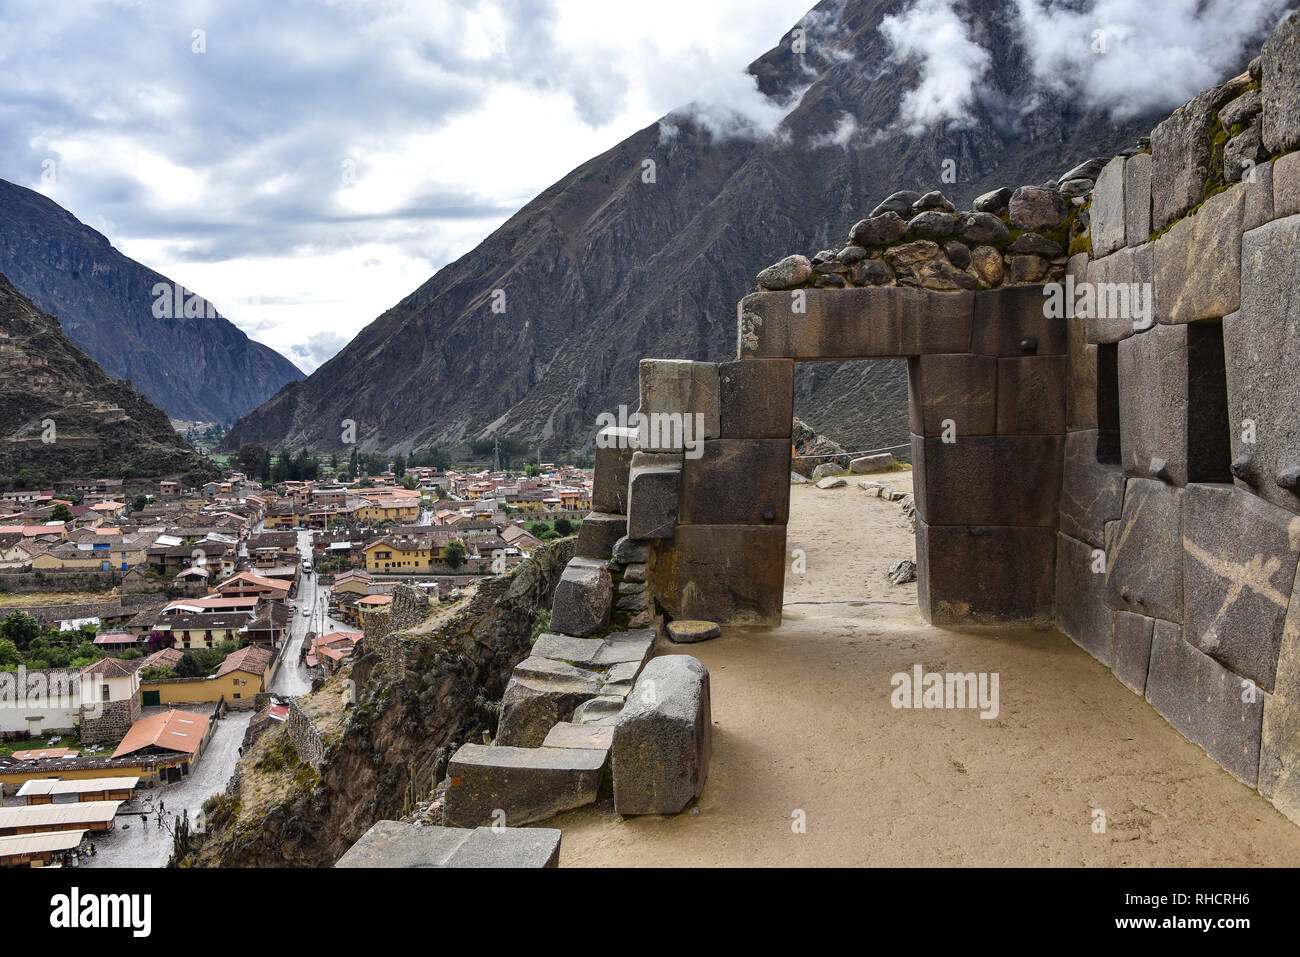 Cusco, Peru - Oct 22, 2018: Trapezoidal stone windows and doors at the Ollanytambo archaeological site in the Sacred Valley - Stock Image